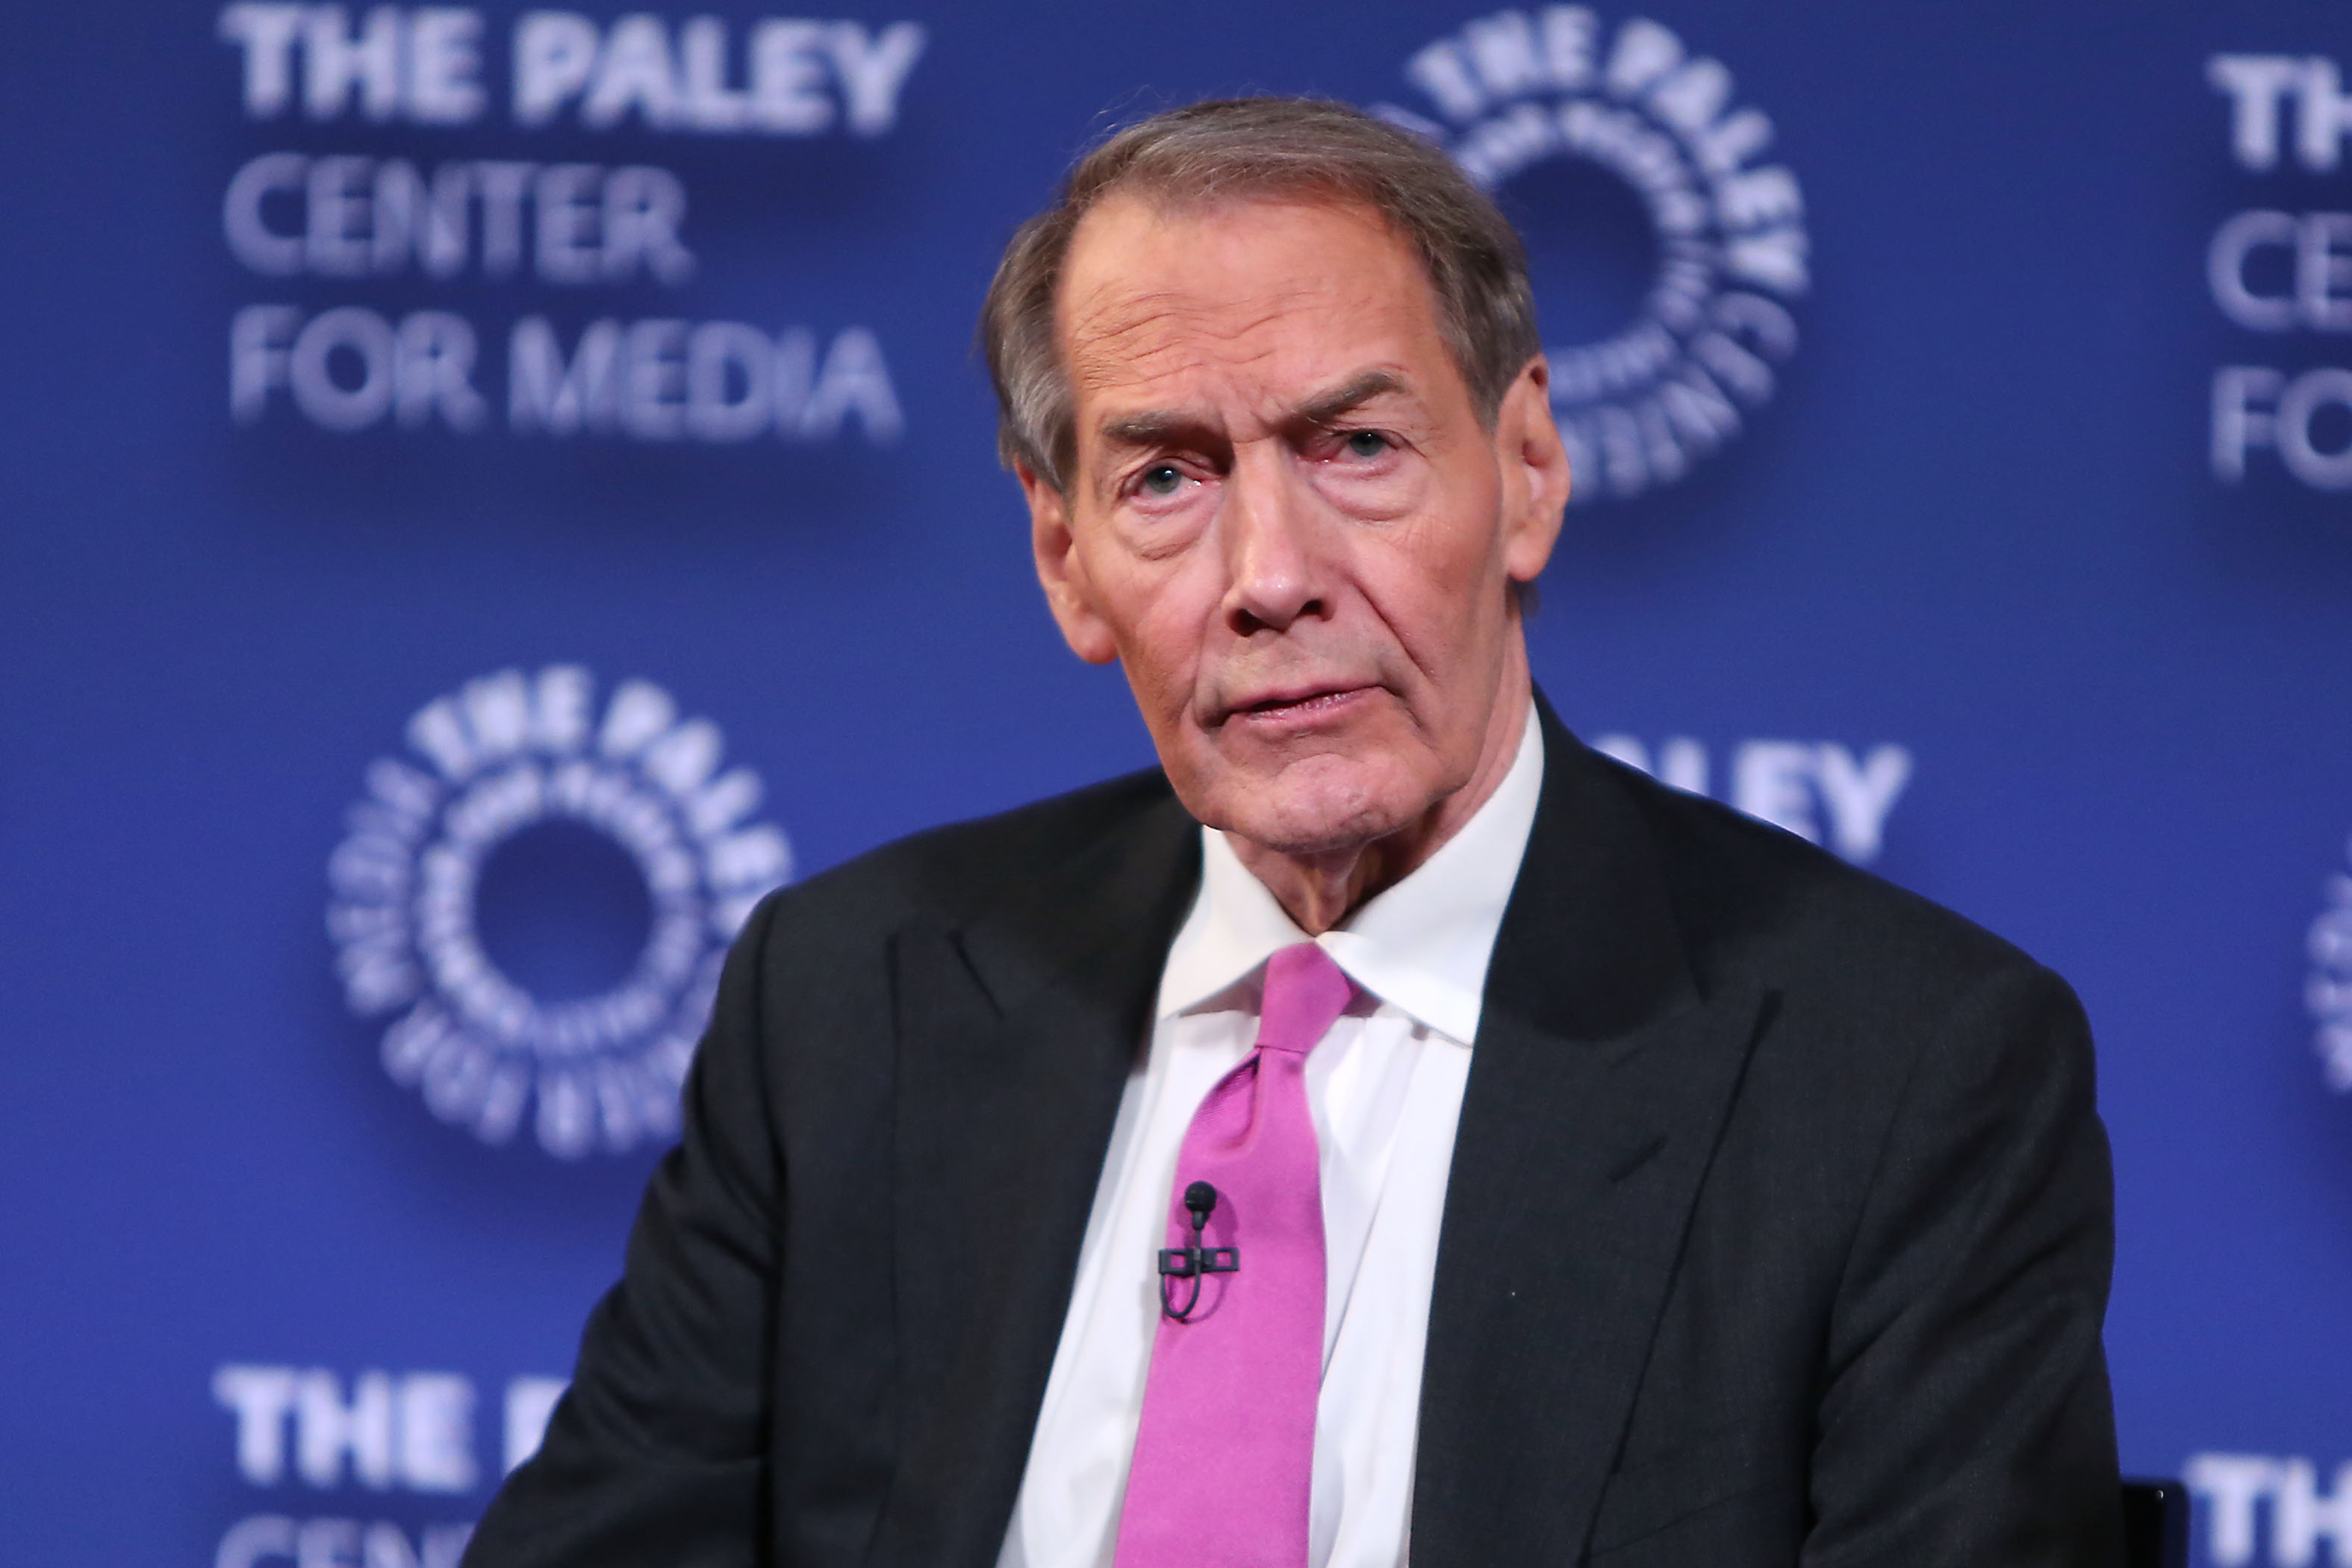 Cronkite school considers revoking award to Charlie Rose